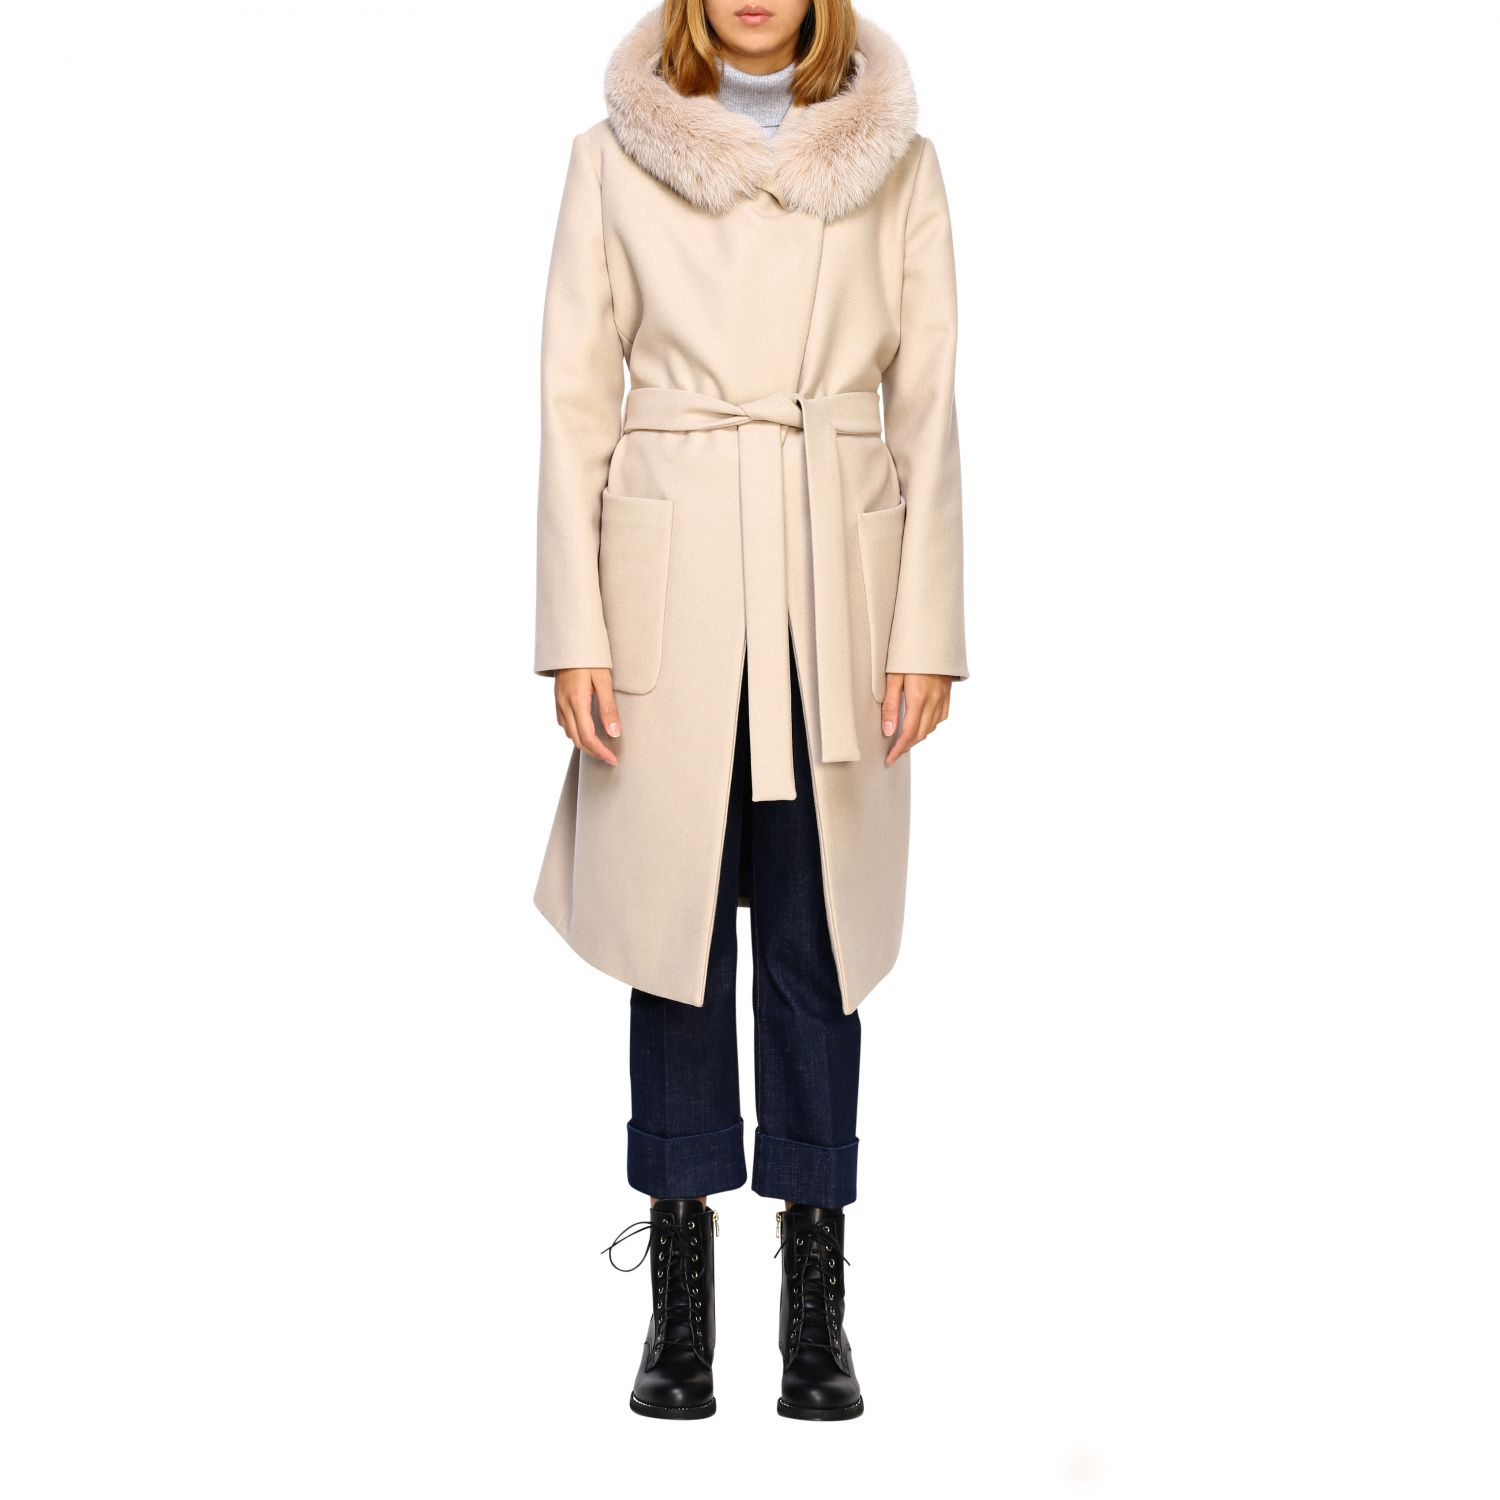 Coat women Fay yellow cream 1